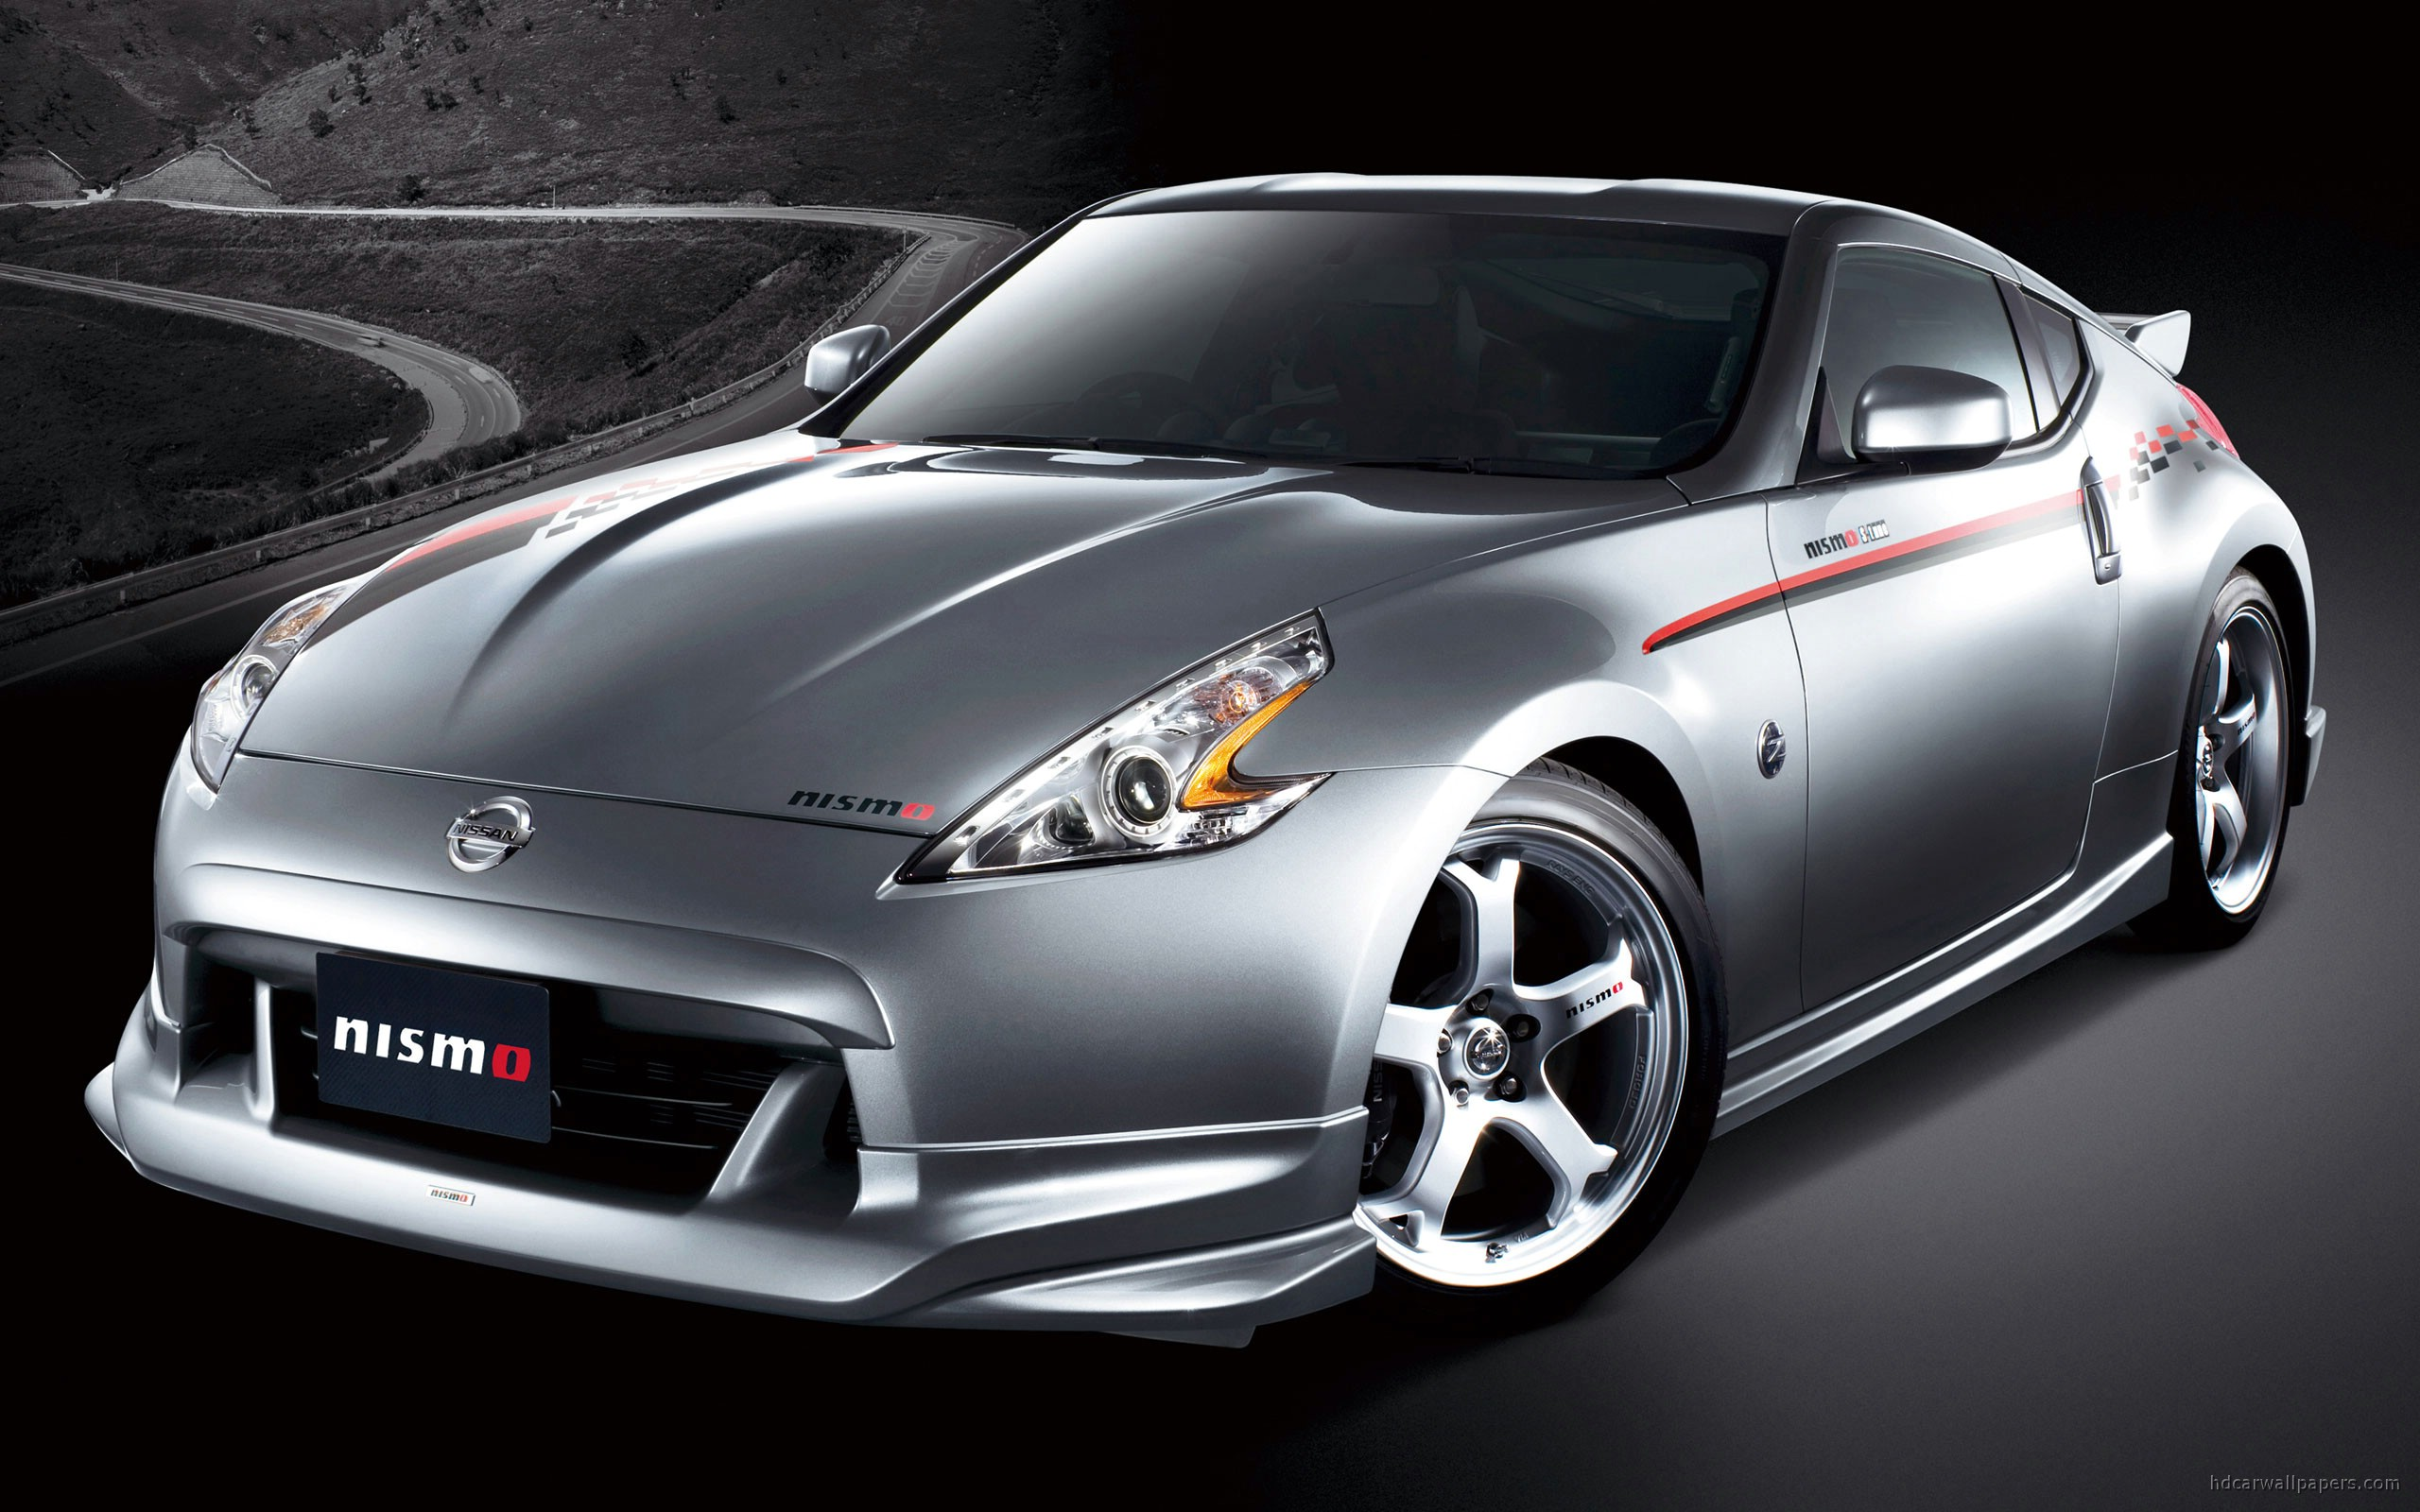 Nissan 370z S Tune Wallpaper HD Car Wallpapers 2560x1600